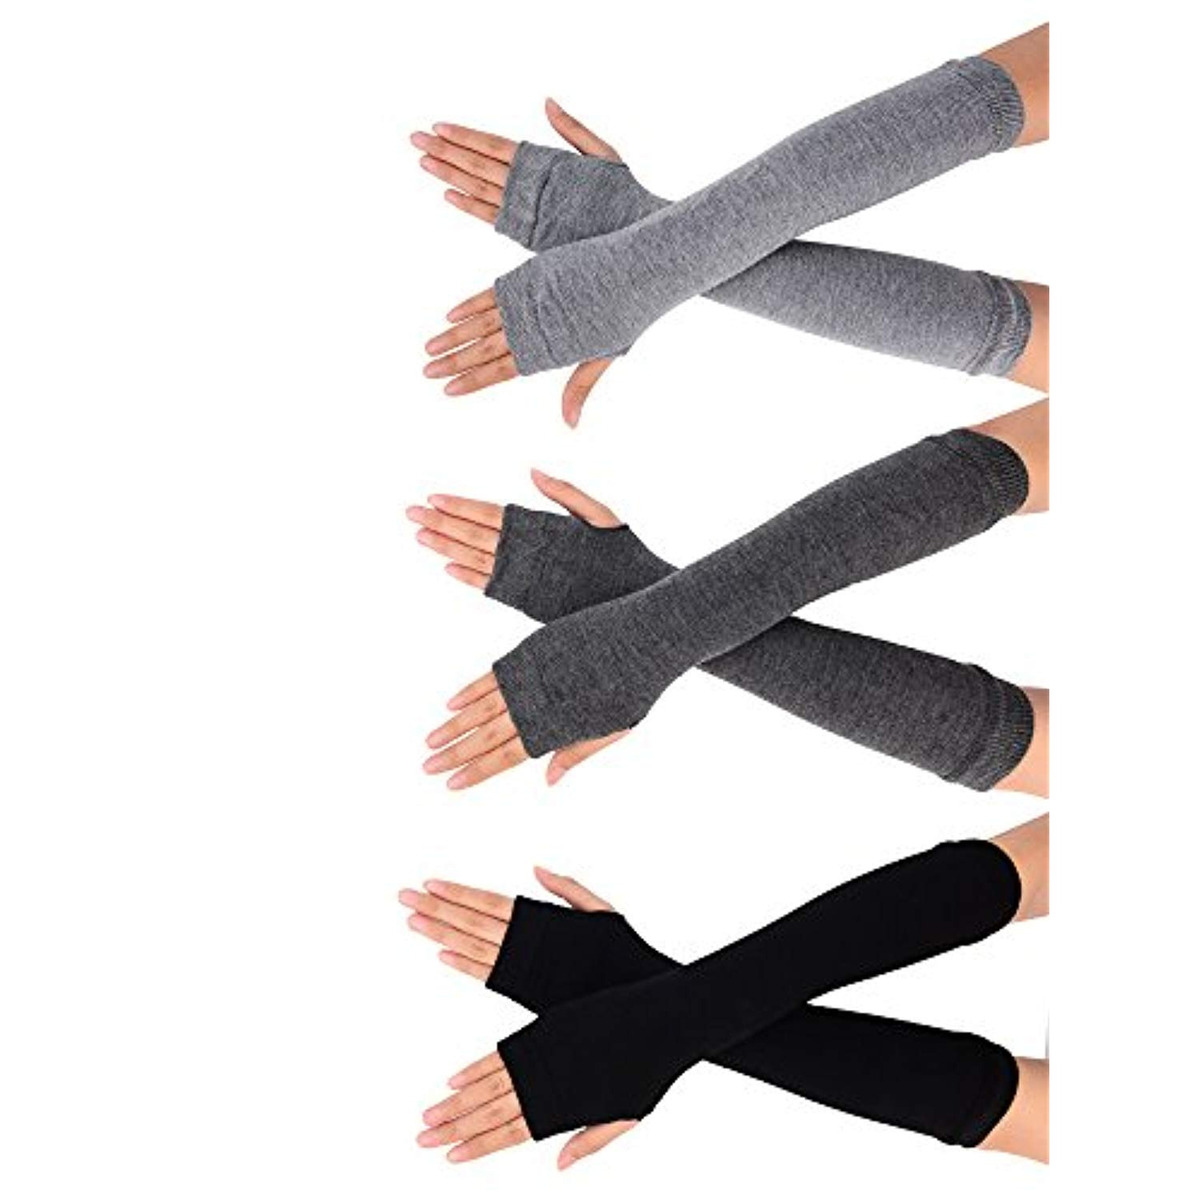 Bememo 3 Pairs Winter Long Fingerless Gloves Knit Elbow Length Gloves Thumb Hole Arm Warmers for Women Girls